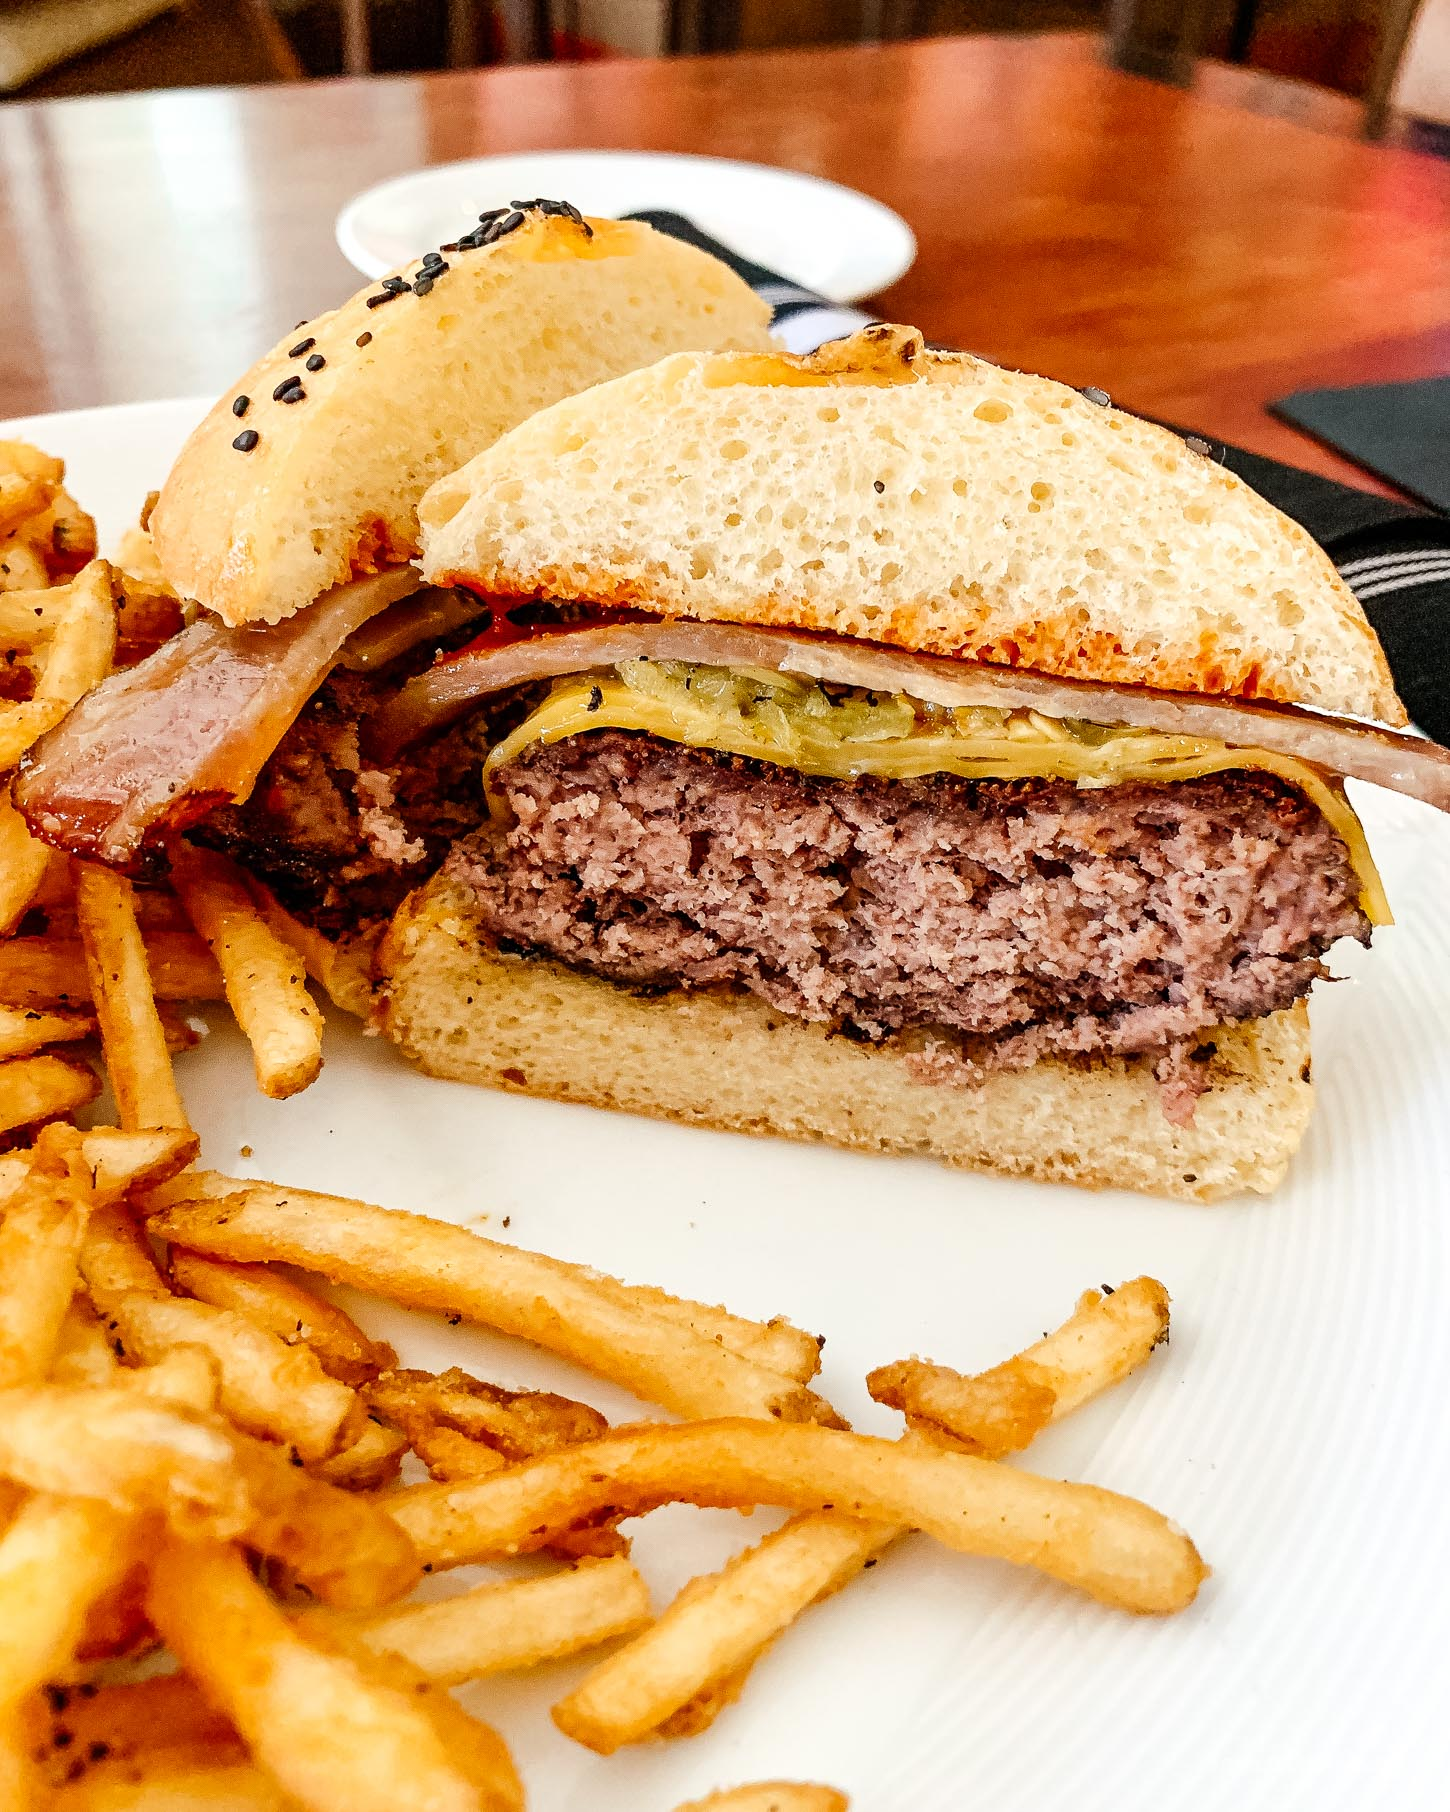 We went on the search for the best green chile cheeseburger in New Mexico #travel #newmexico #greenchile #greenchilecheeseburger #wheretoeat #wheretoeatnewmexico